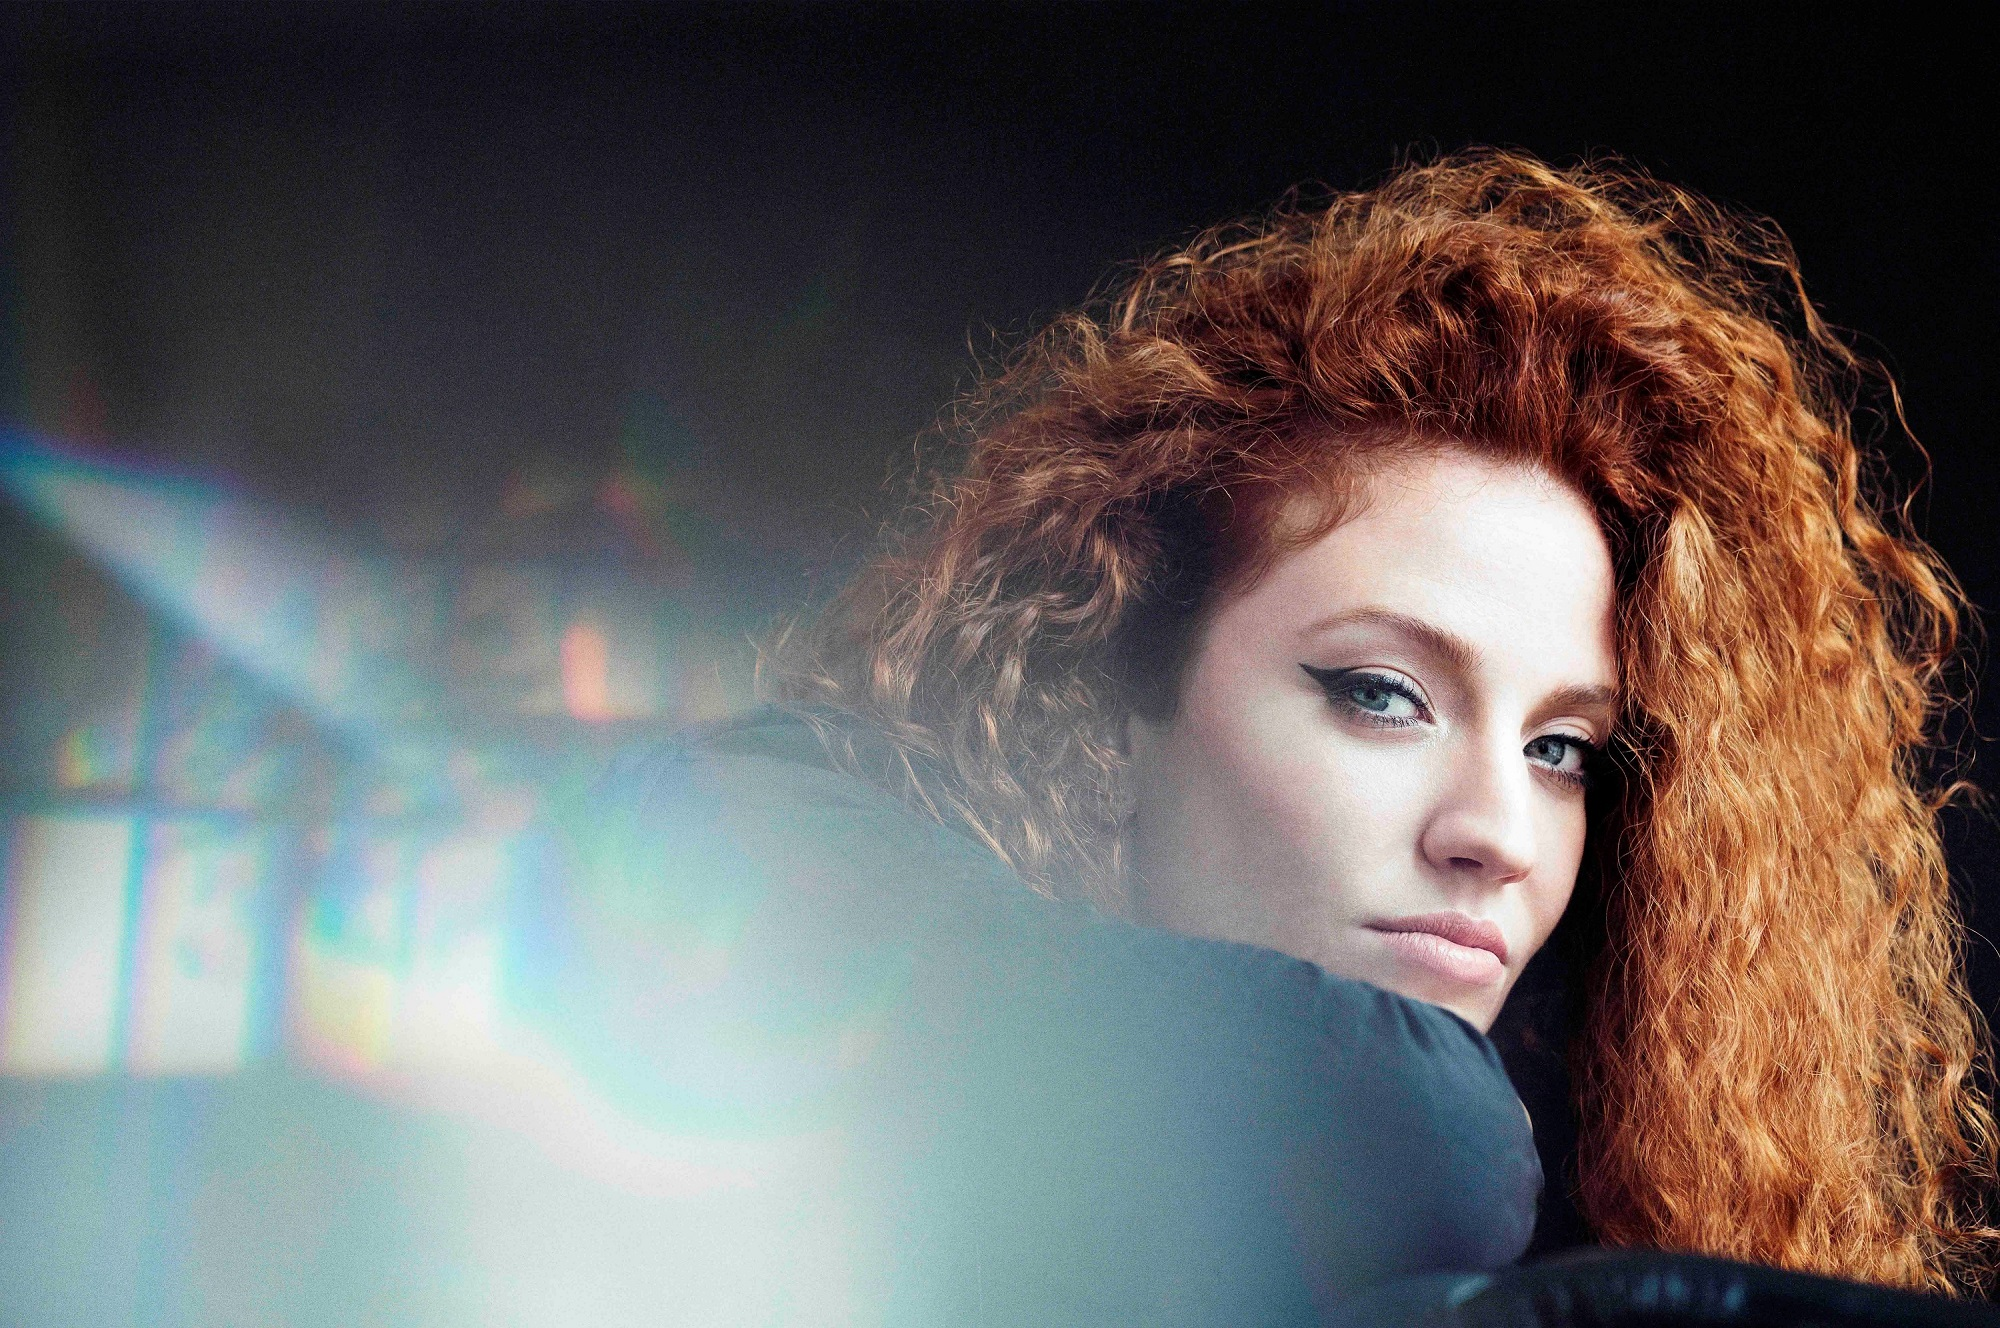 Jess Glynne performs at Sandown Park racecourse on 13 July